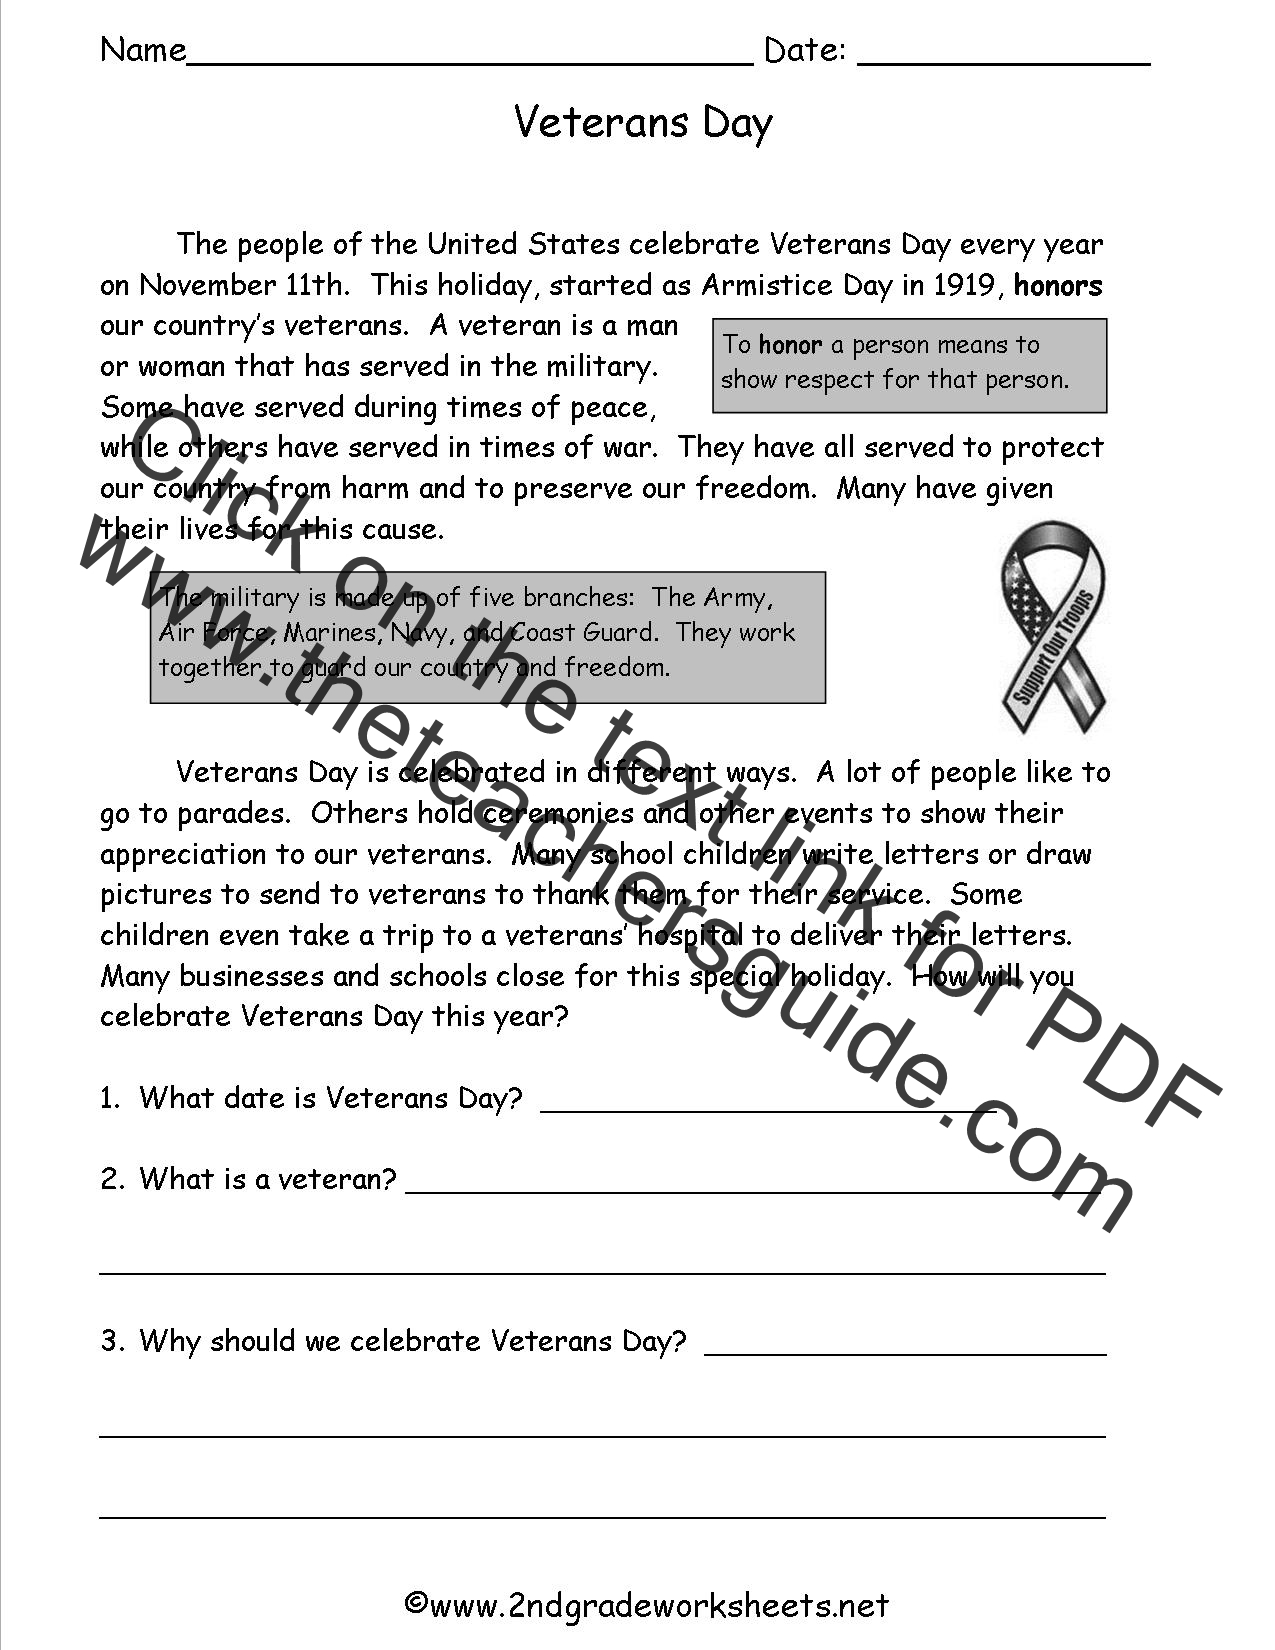 Worksheet Second Grade Reading Comprehension Stories veterans day worksheets comprehension story